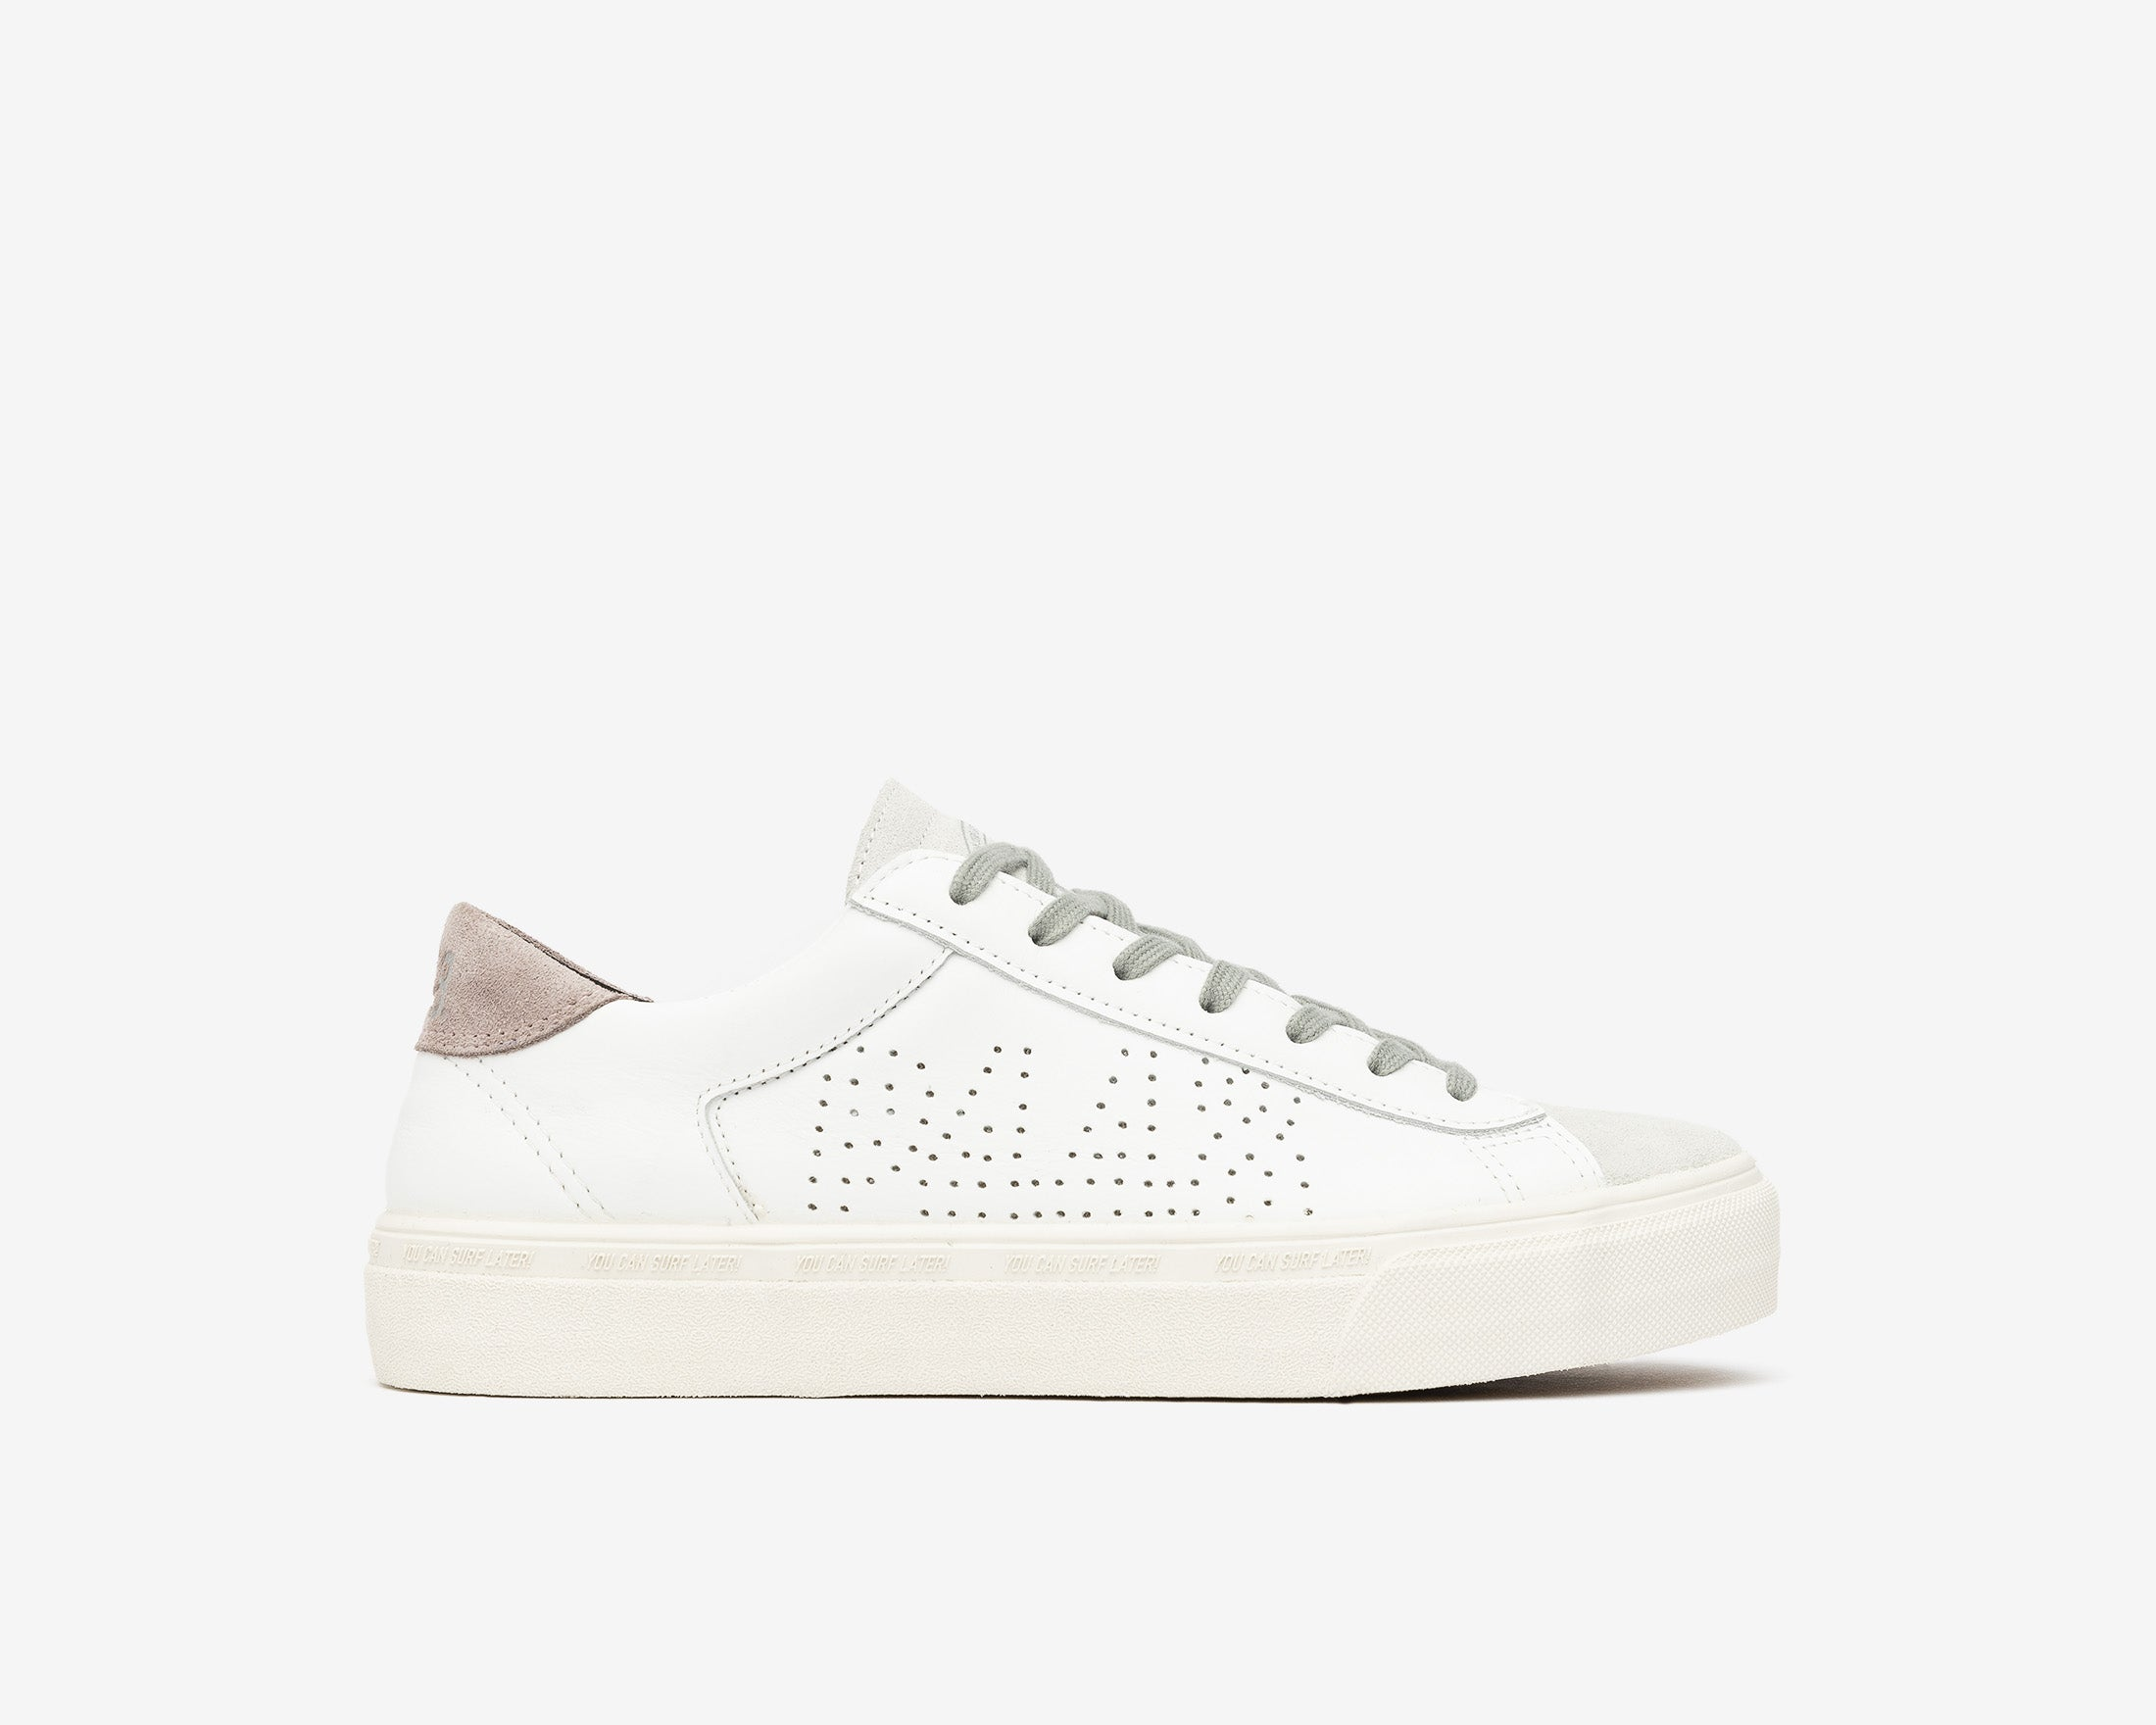 Y.C.S.L. Vibram Low-Top Sneaker in White/Pink - Profile